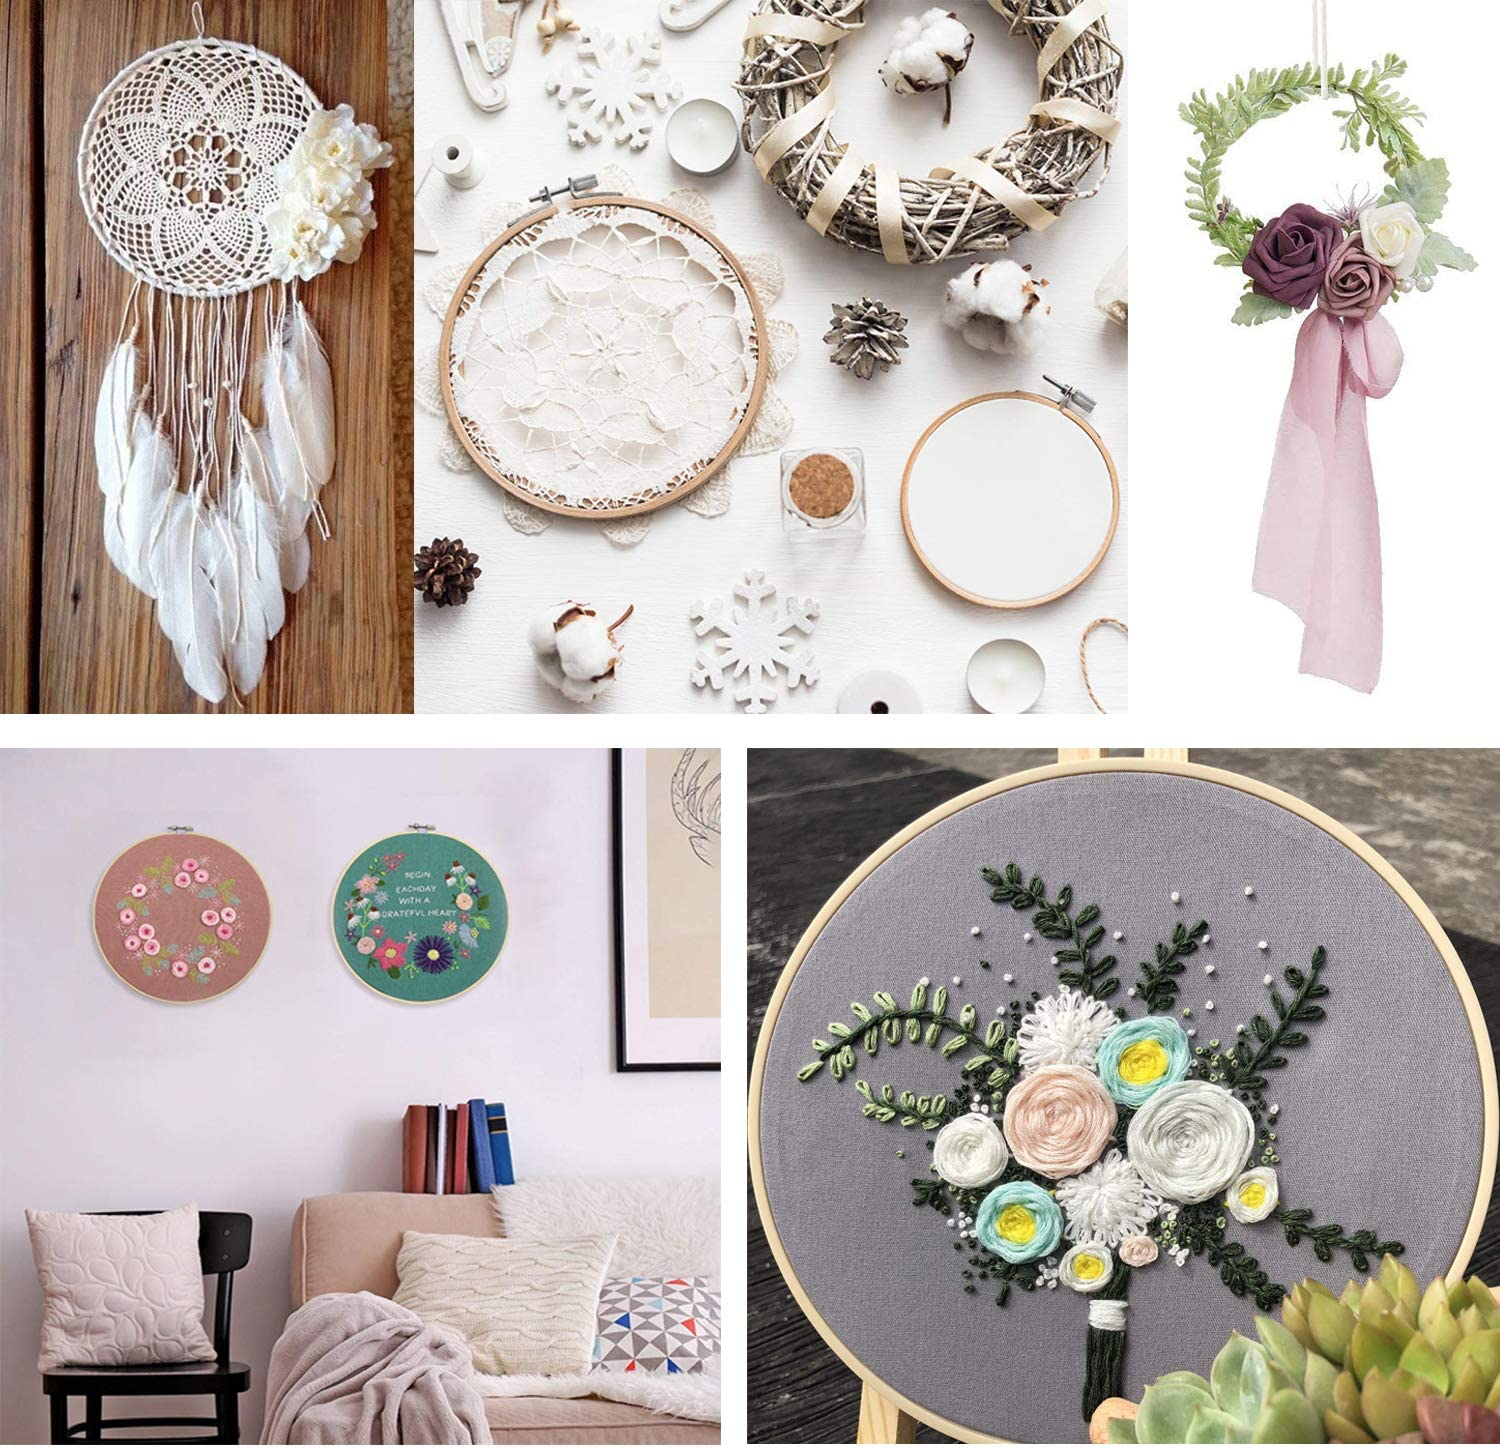 6 PCS Christmas Embroidery Hoop Set Bamboo Circle Cross Stitch Hoop Ring 5 inch to 10 inch for Embroidery Cross Stitch Craft Sewing